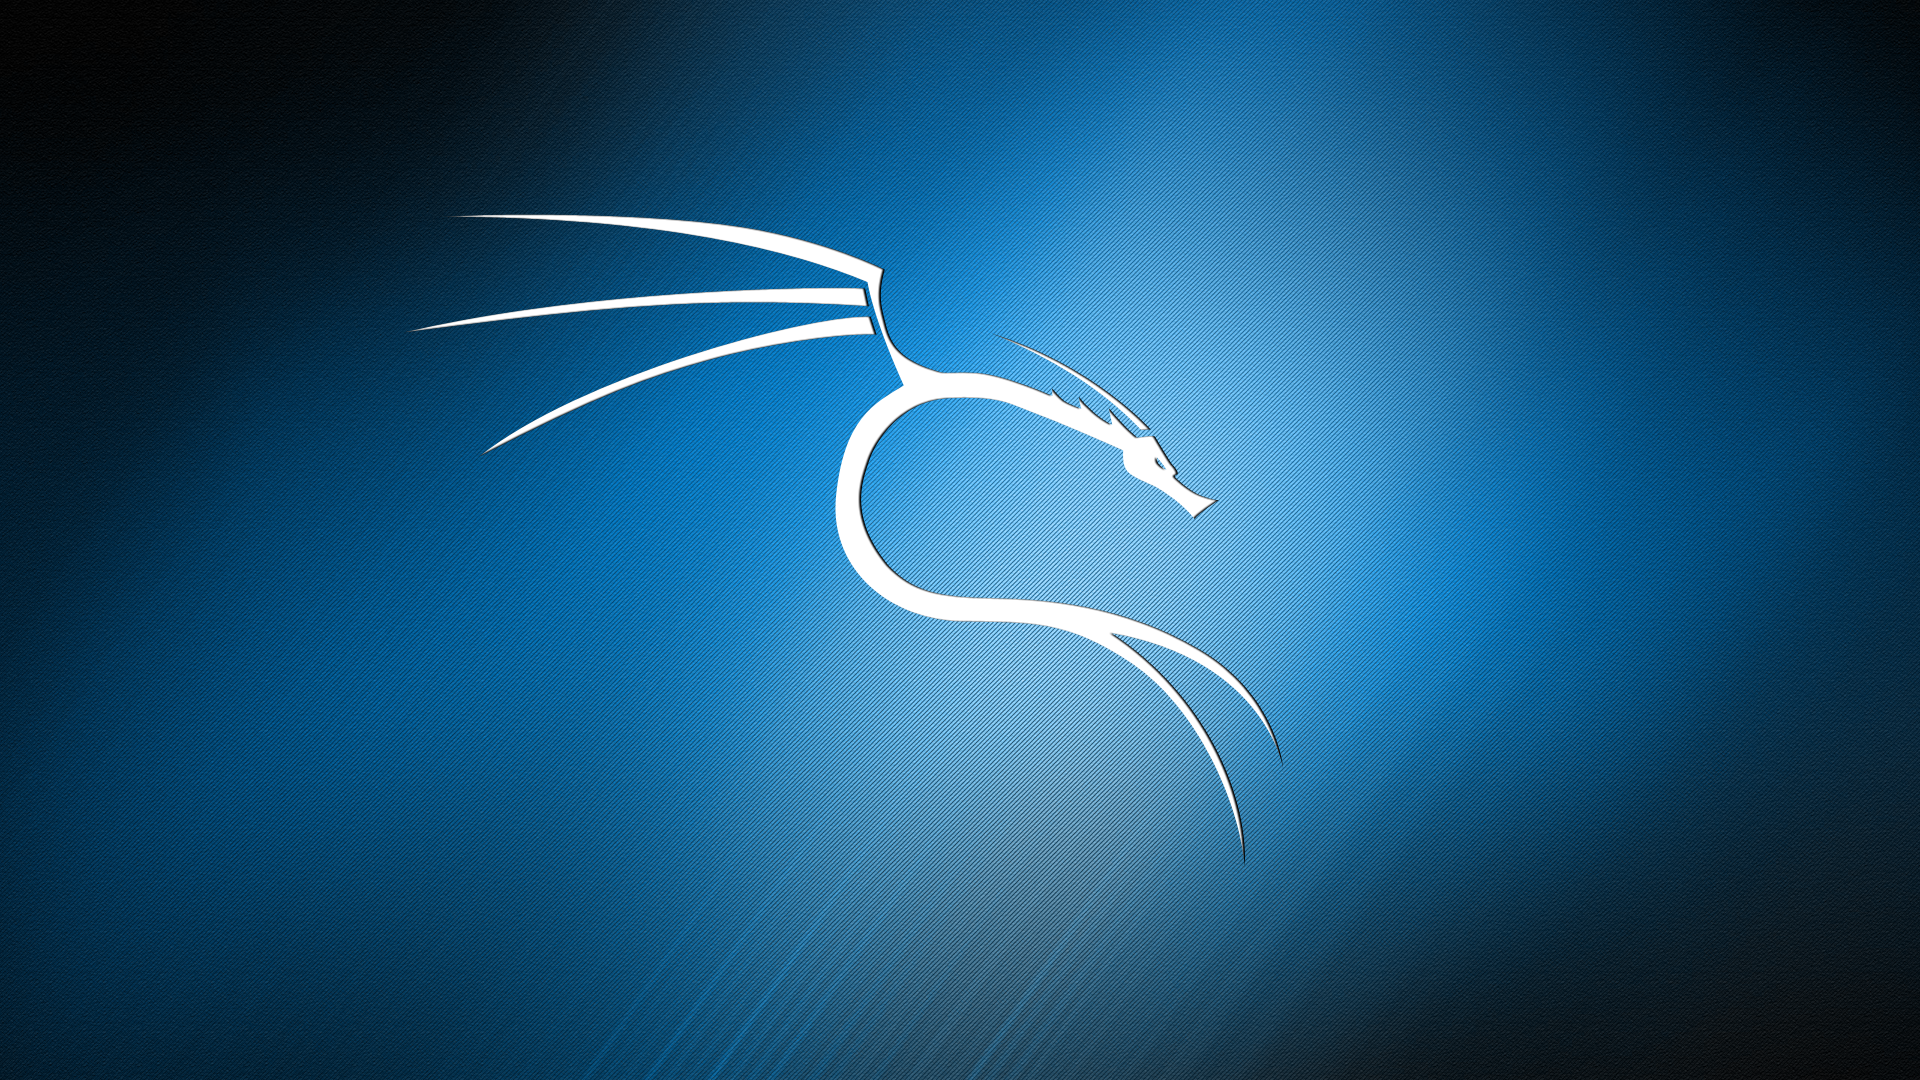 Kali Linux R Wallpapers Blue Background Wallpapers Blue Backgrounds Background